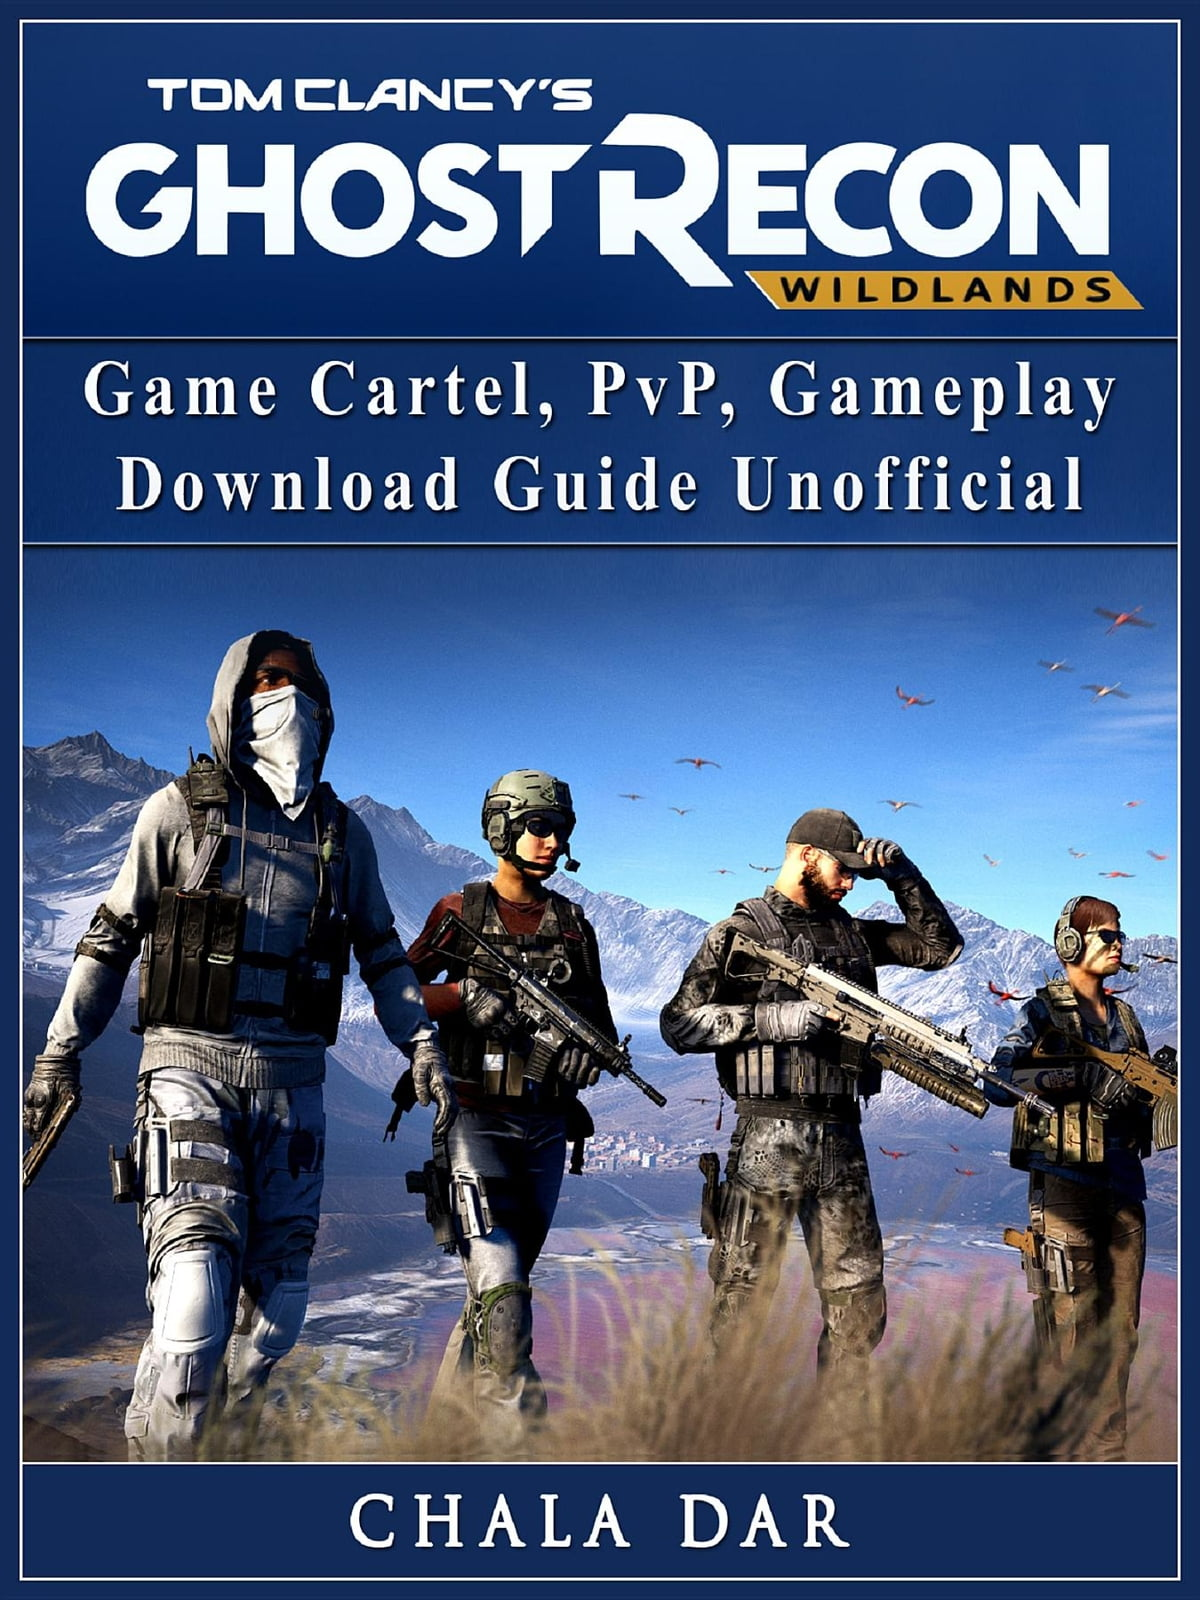 Tom Clancys Ghost Recon Wildlands Game Cartel, PvP, Gameplay, Download  Guide Unofficial ebook by Chala Dar - Rakuten Kobo